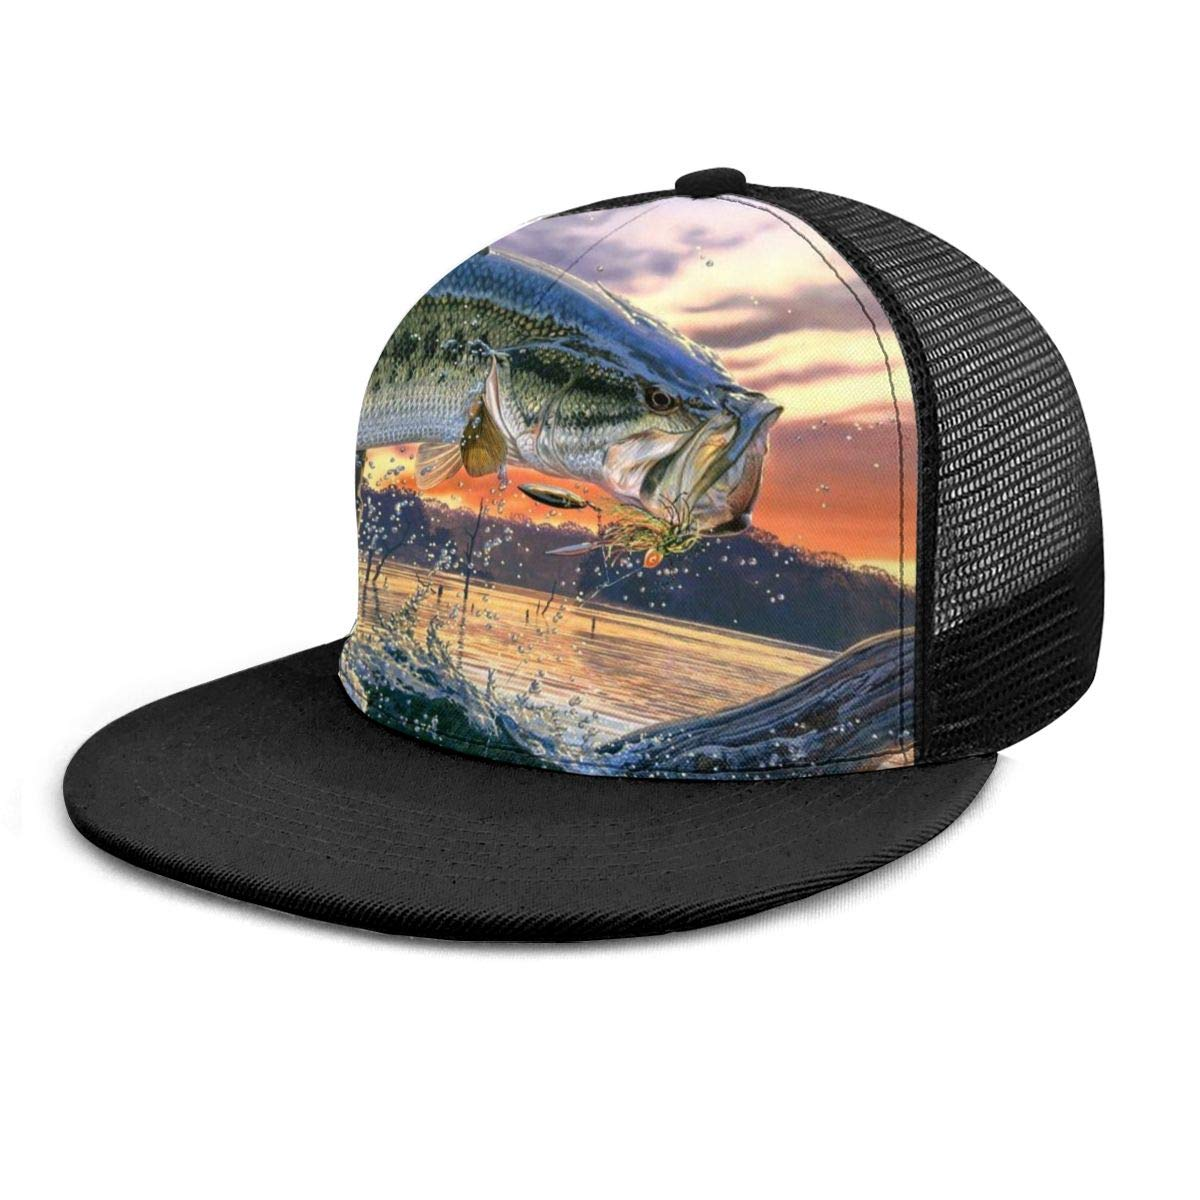 Unisex 100/% Polyester Mouth Bass Jumping Out of The Sea Mesh Cap Quick Dry Mesh Back Trucker Hat for Unisex